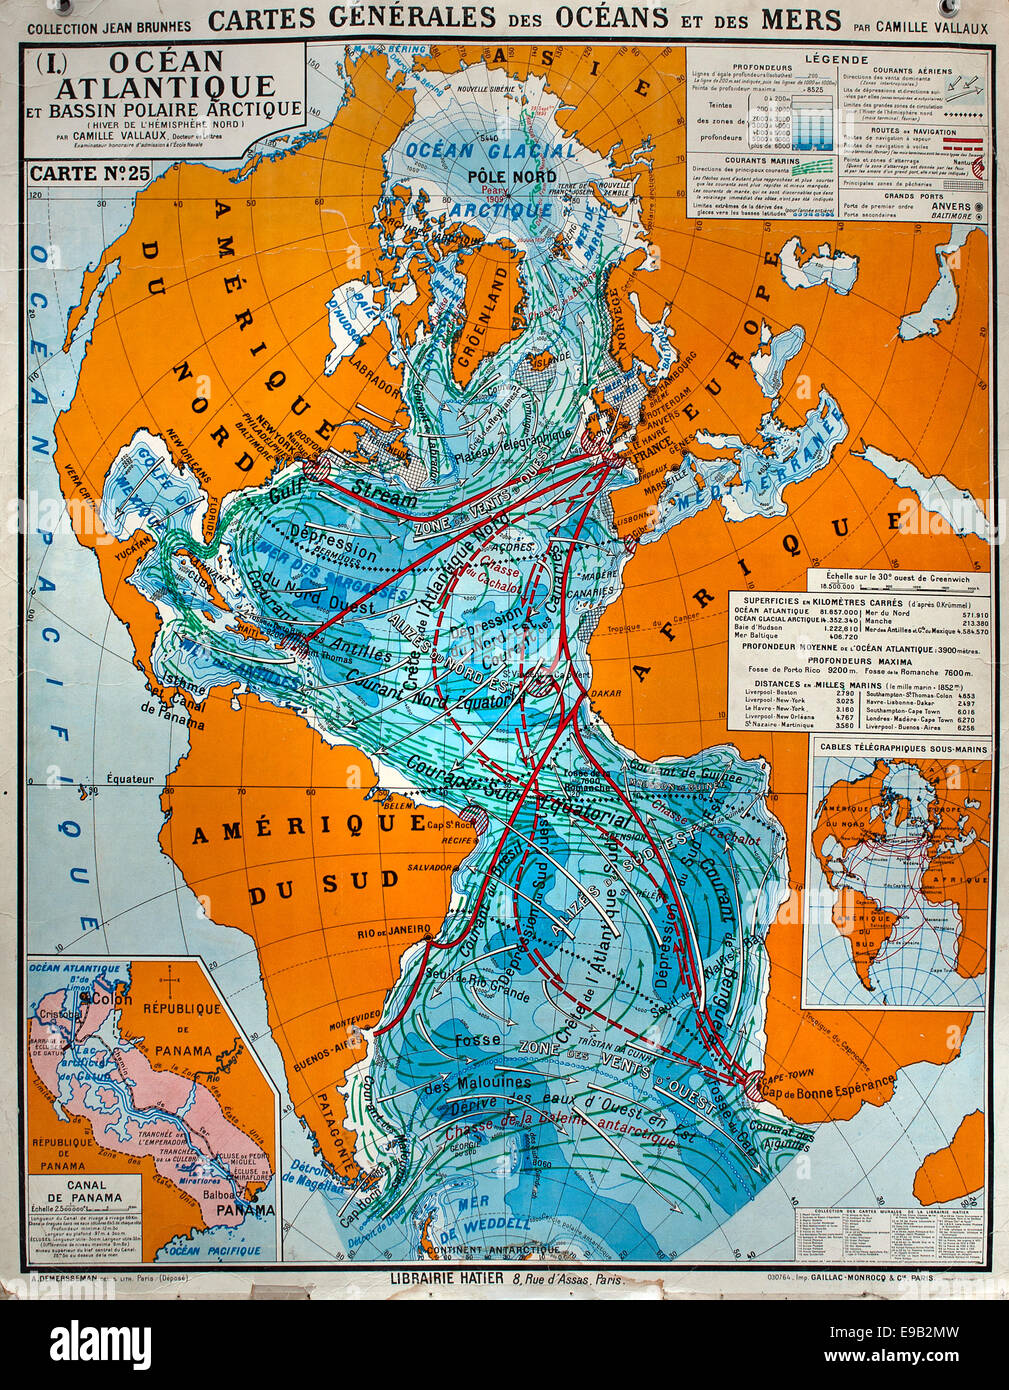 Old school world wall map  French cartography - Stock Image